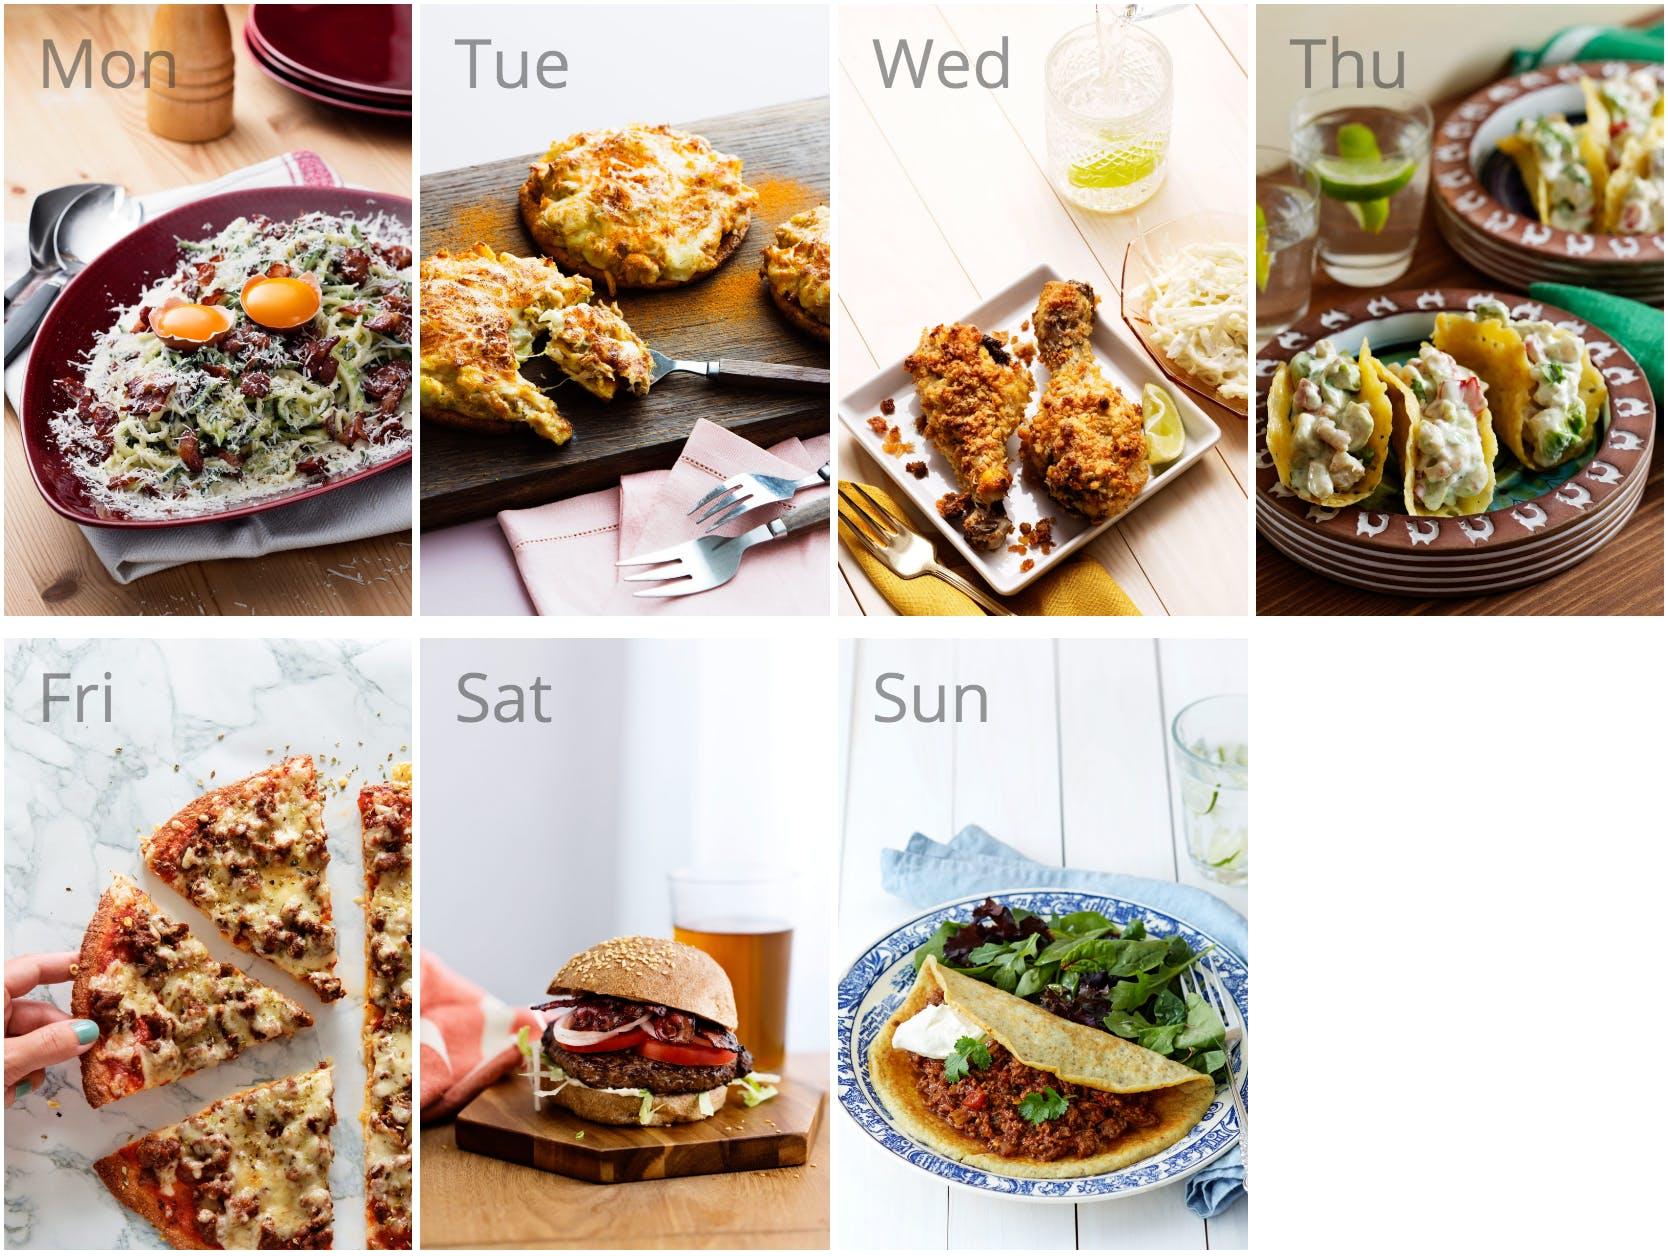 #1 meal plan: keto fast food favorites